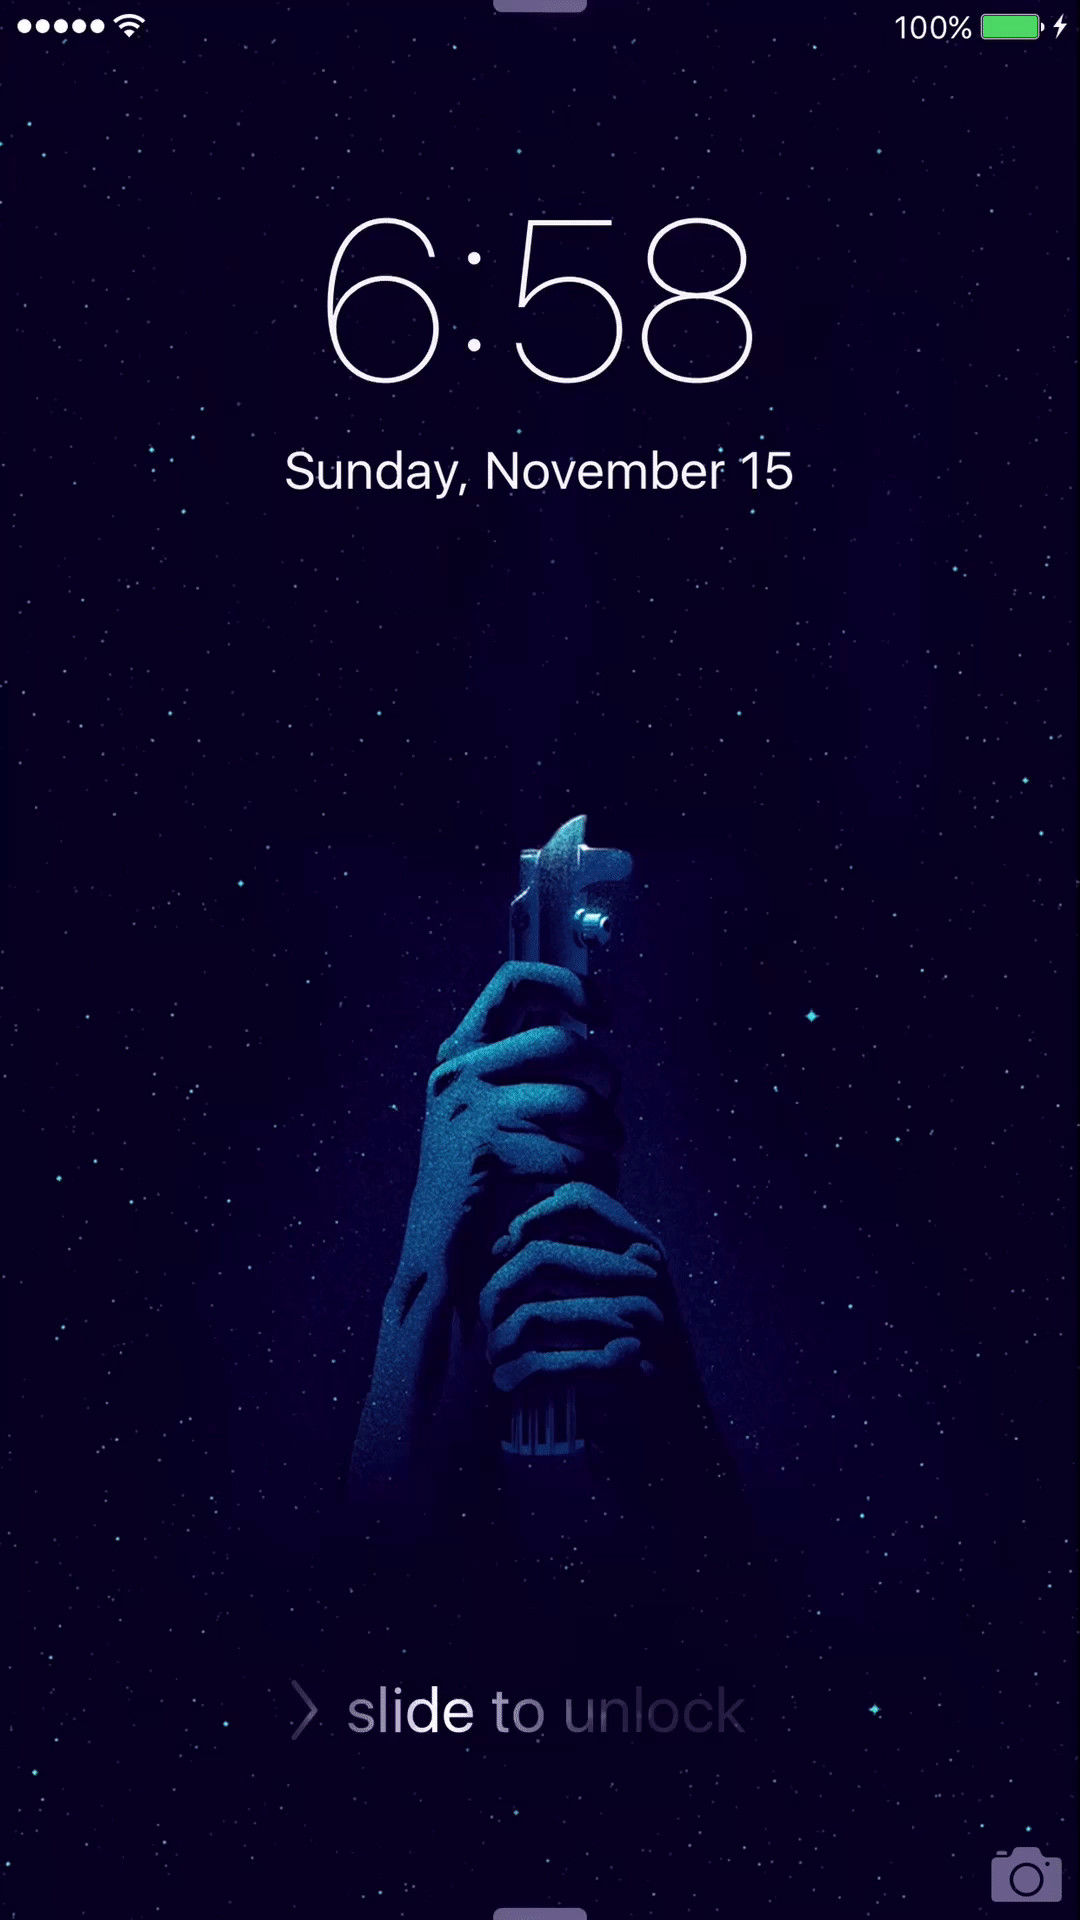 Star wars wallpaper for android 69 images - Star wars wallpaper ...